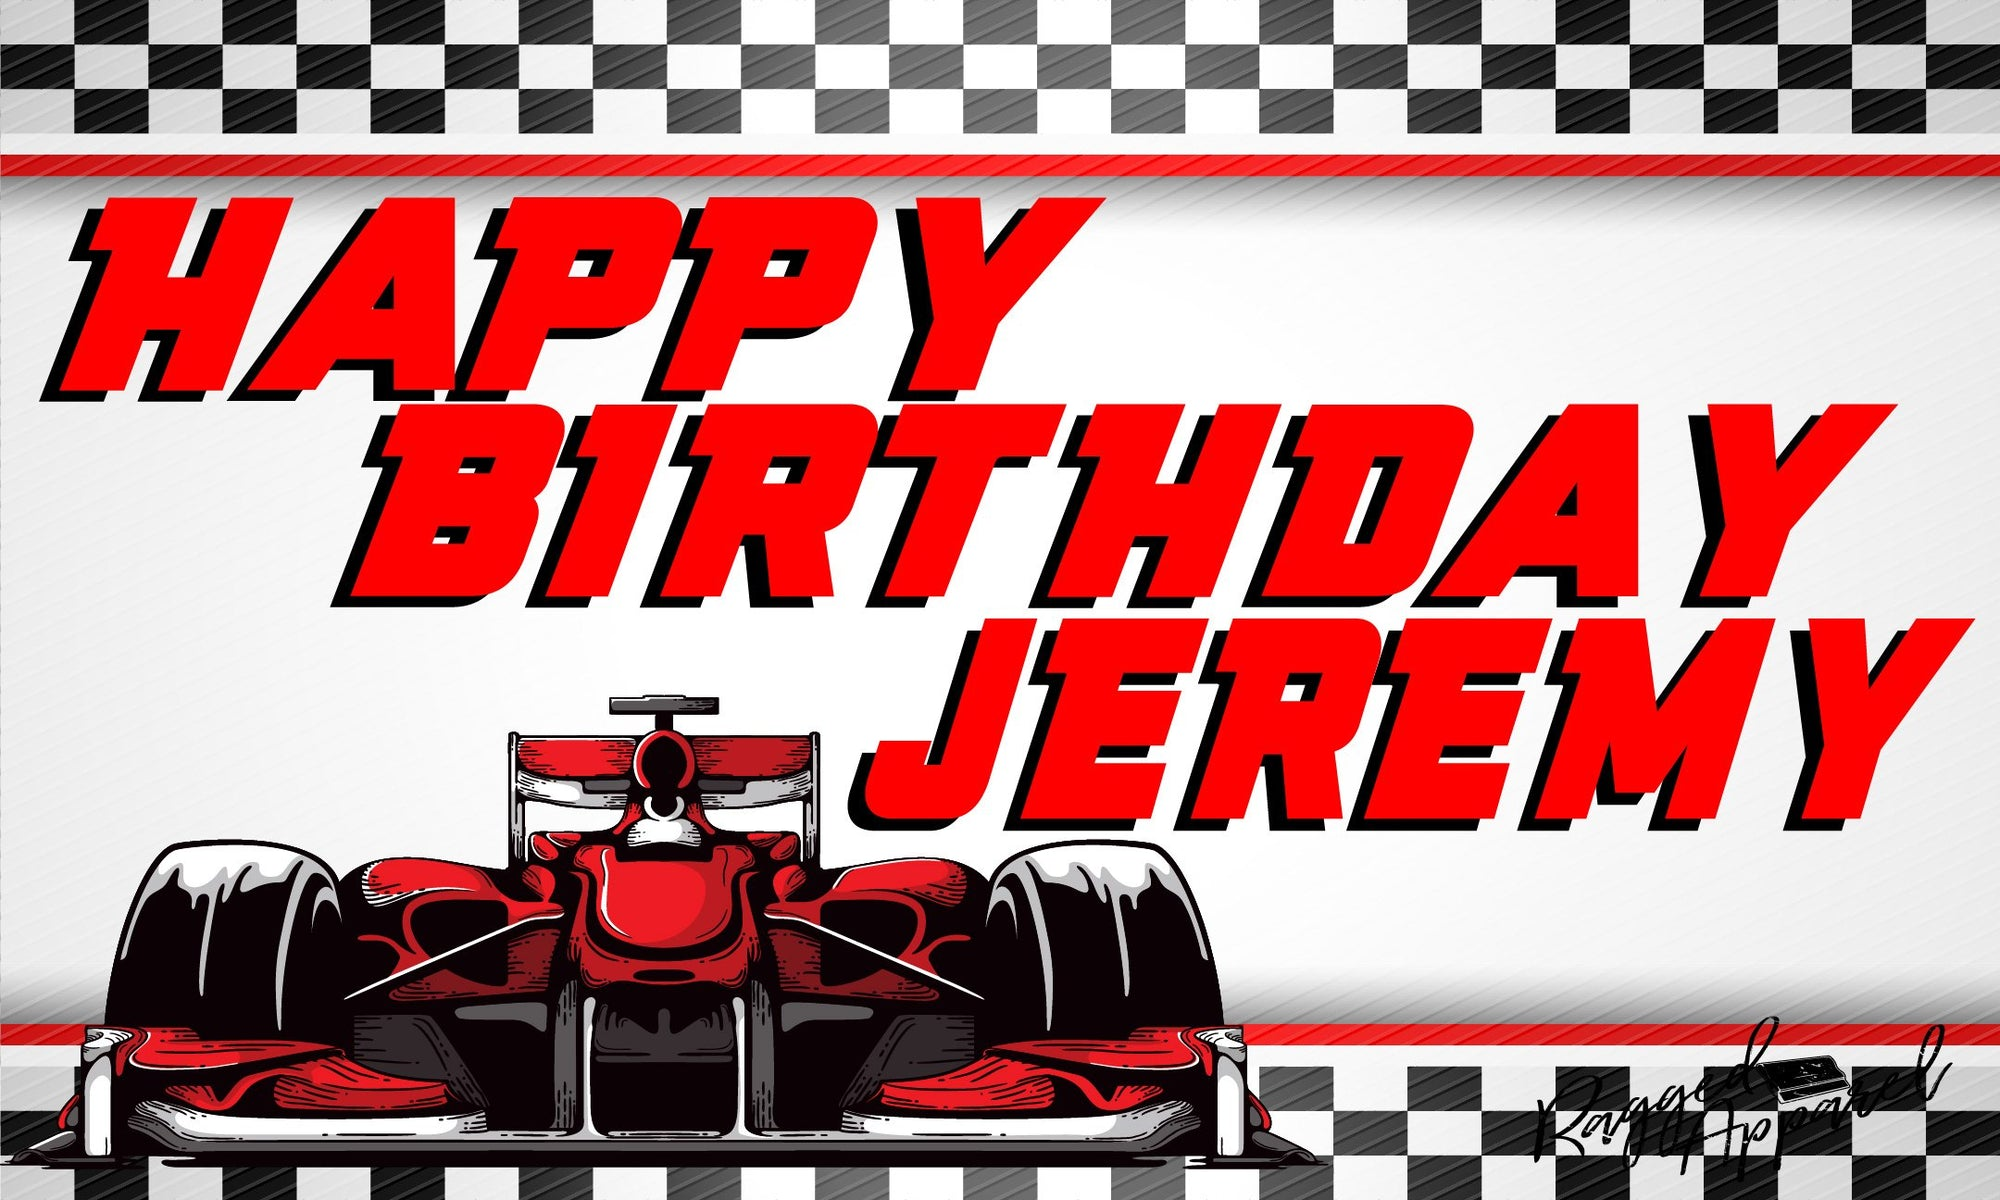 Boys Personalized Race Car Birthday Banner - Ragged Apparel Screen Printing and Signs - www.nmshirts.com